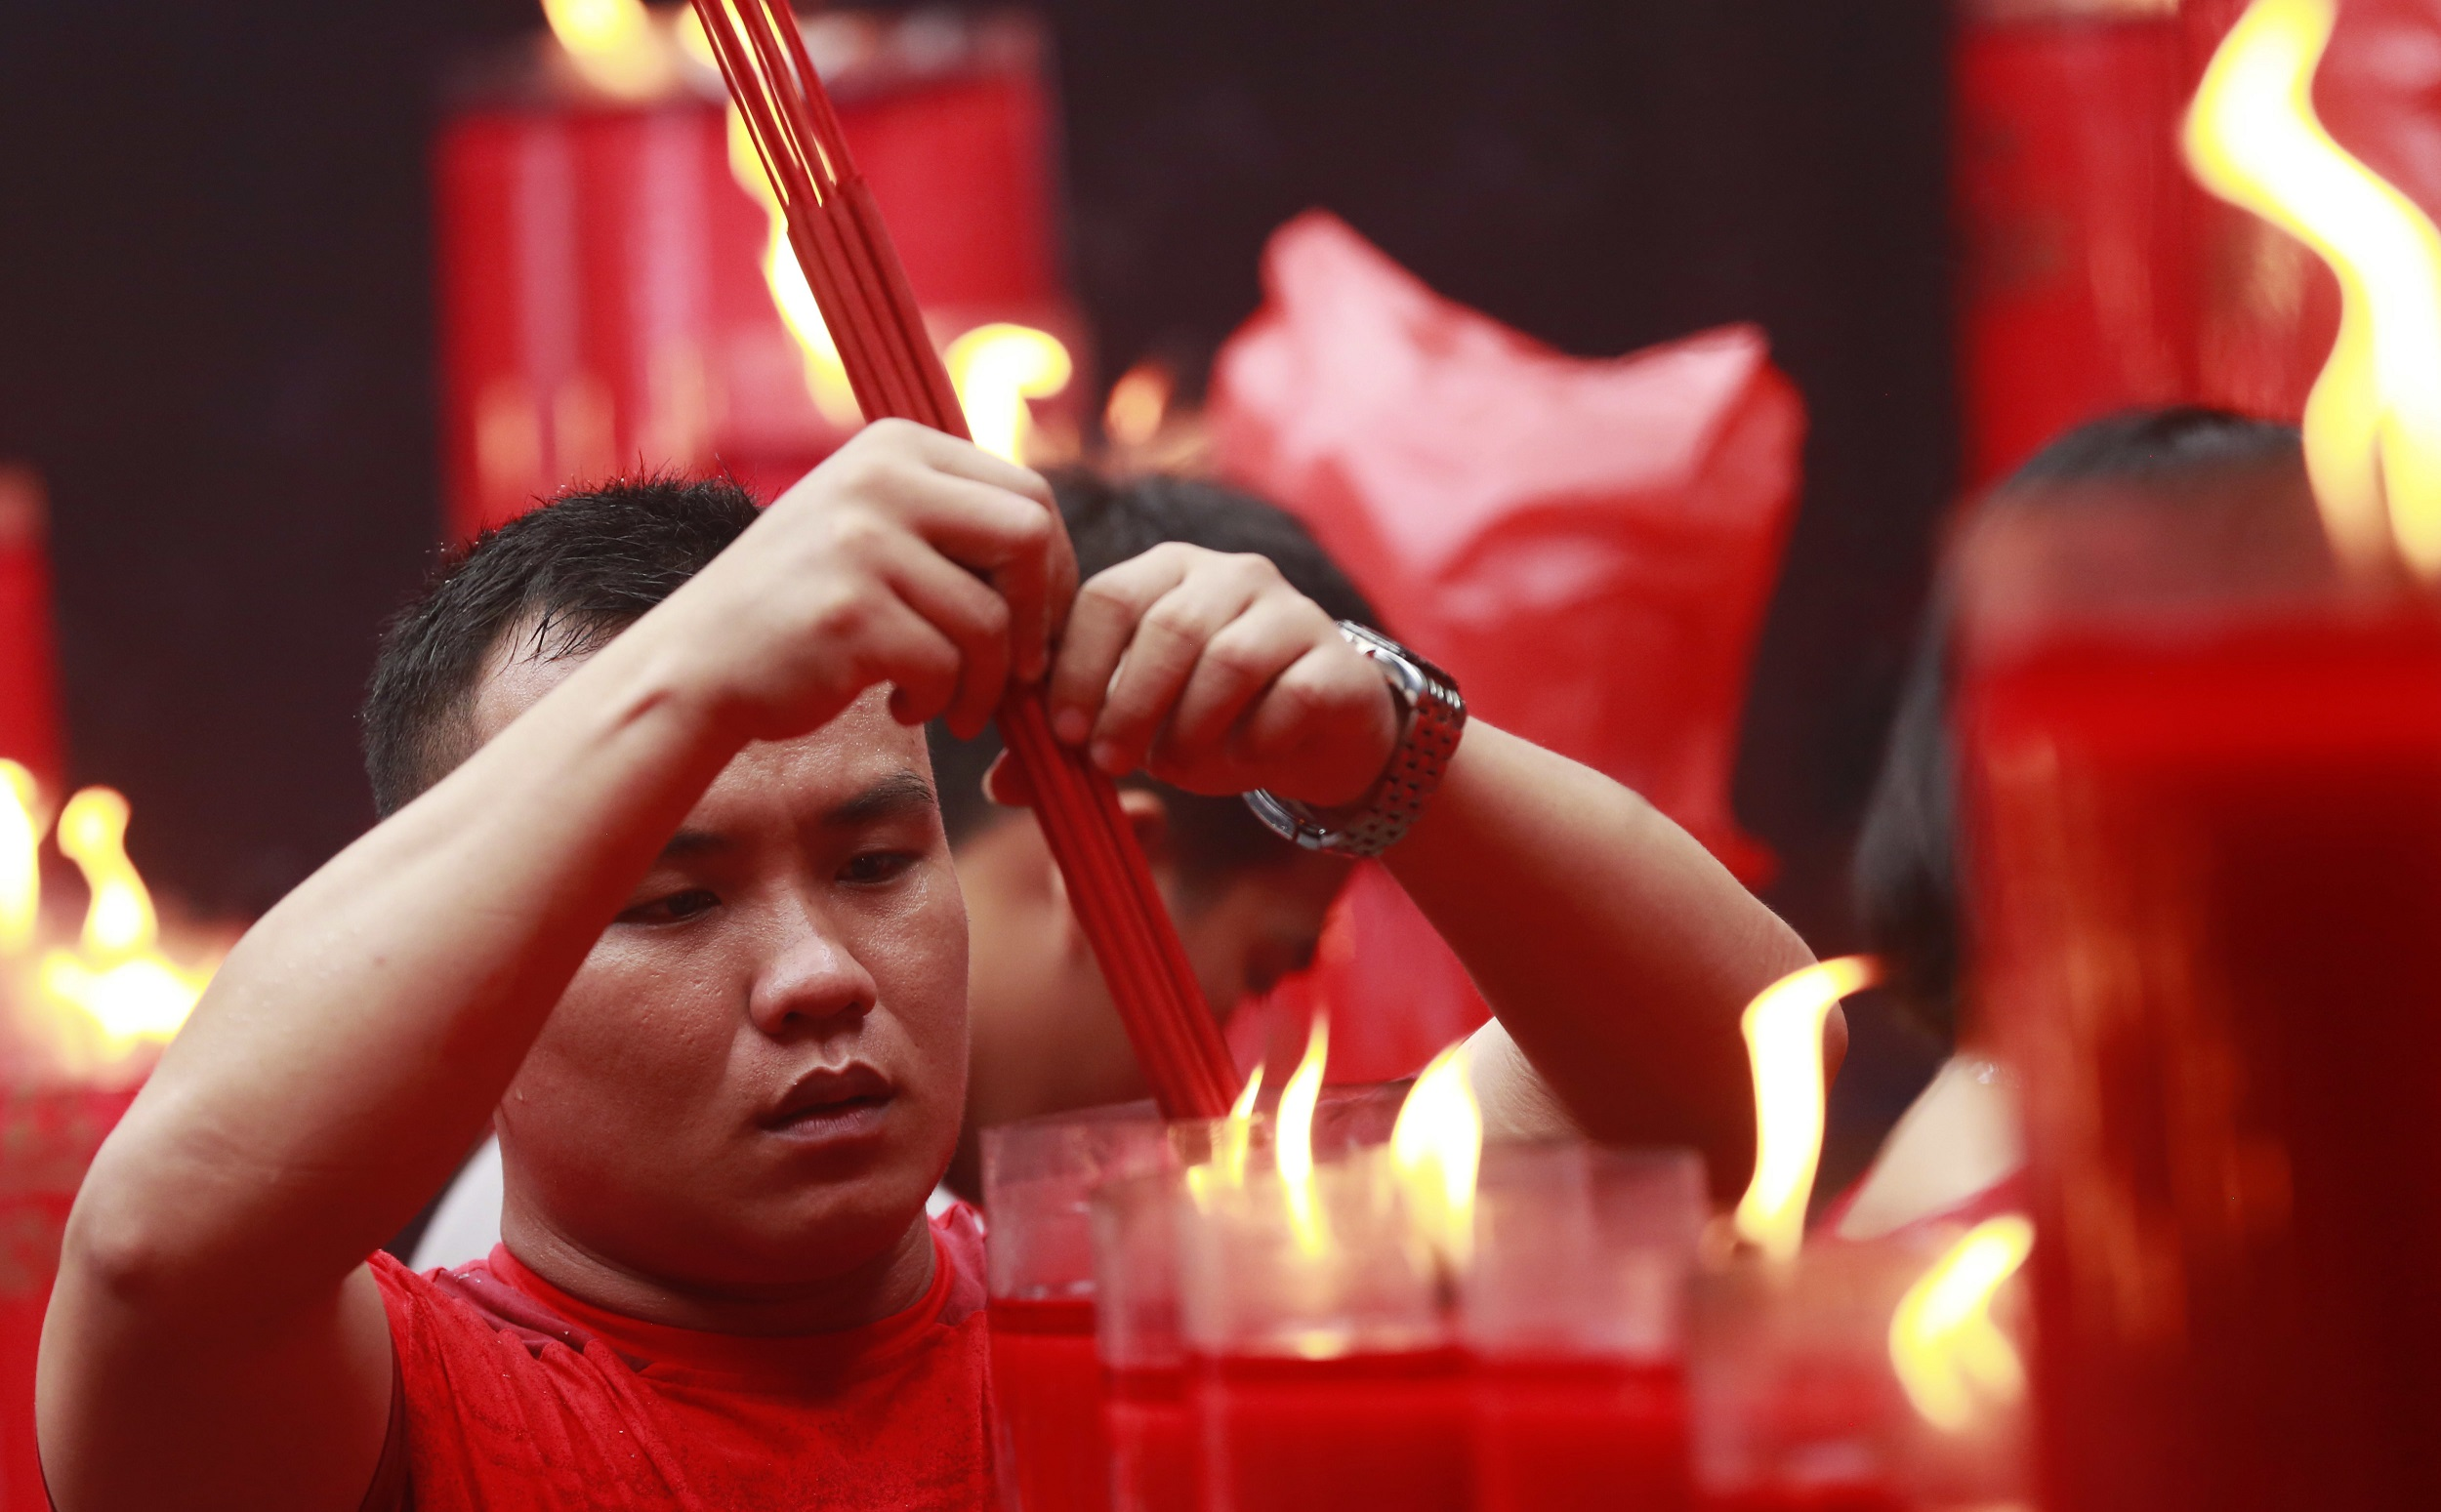 A man lighting incense during Lunar New Year